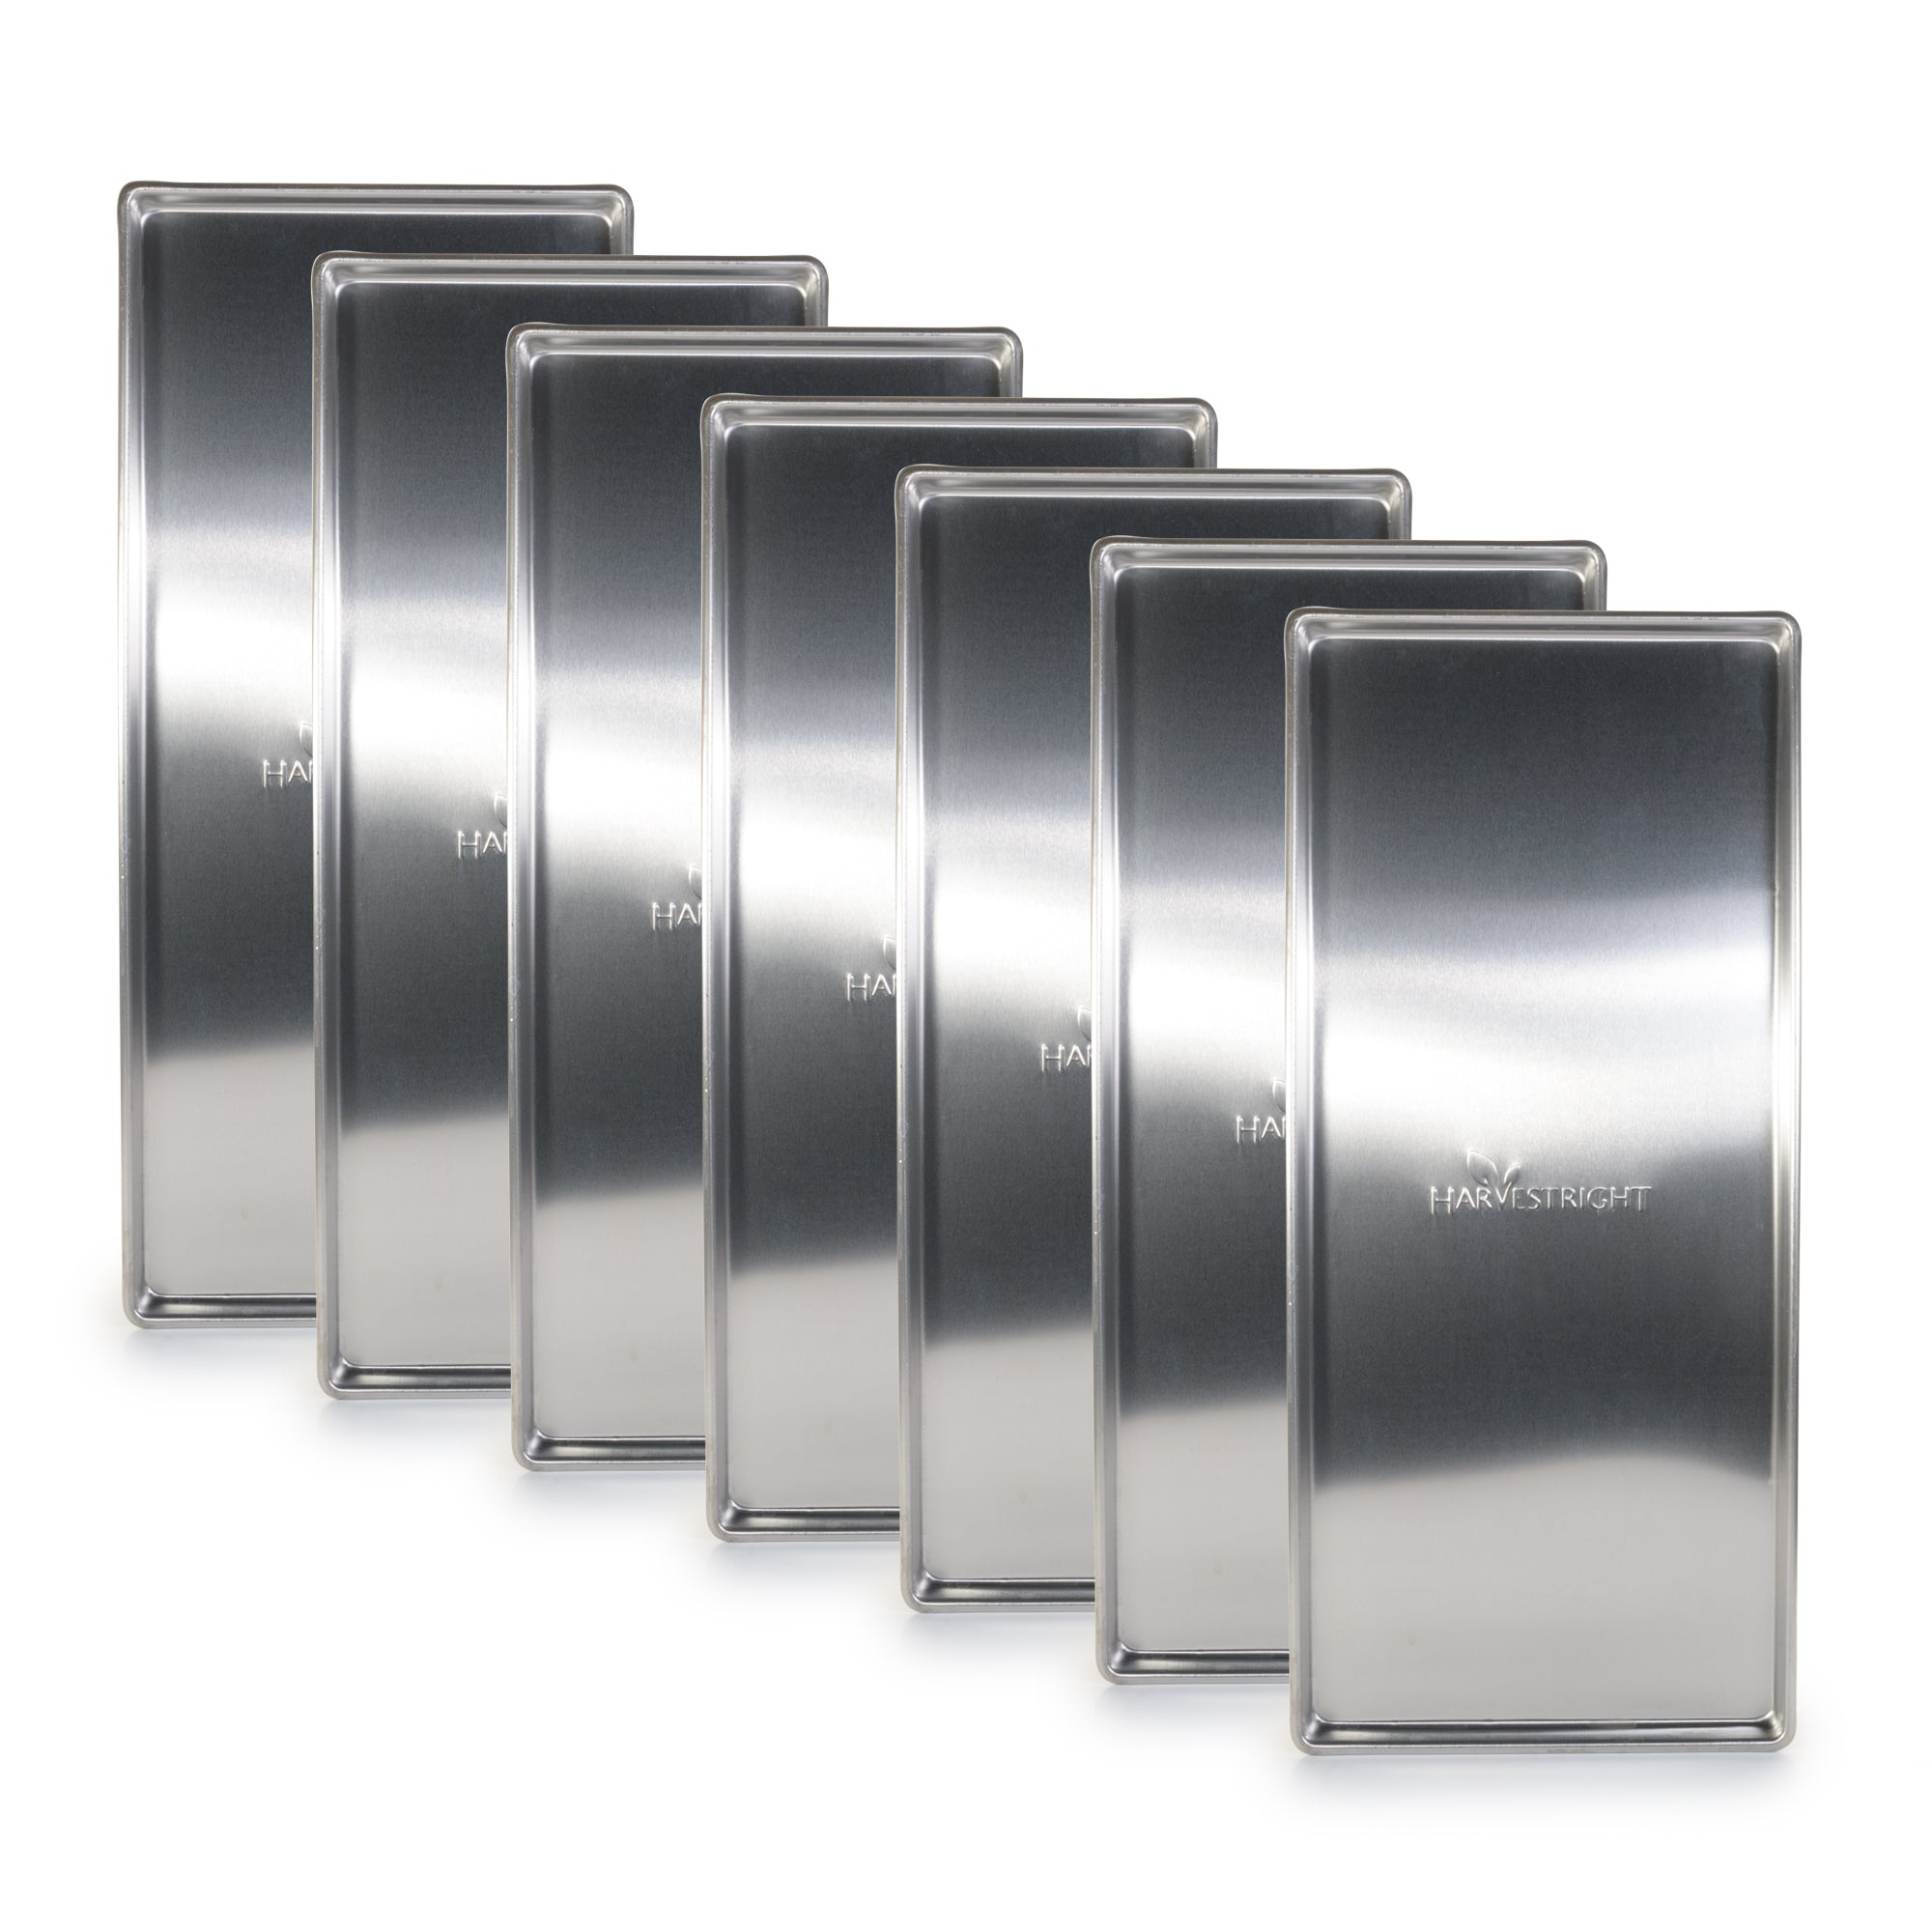 Extra Stainless Steel Harvest Right Freeze Dryer Trays